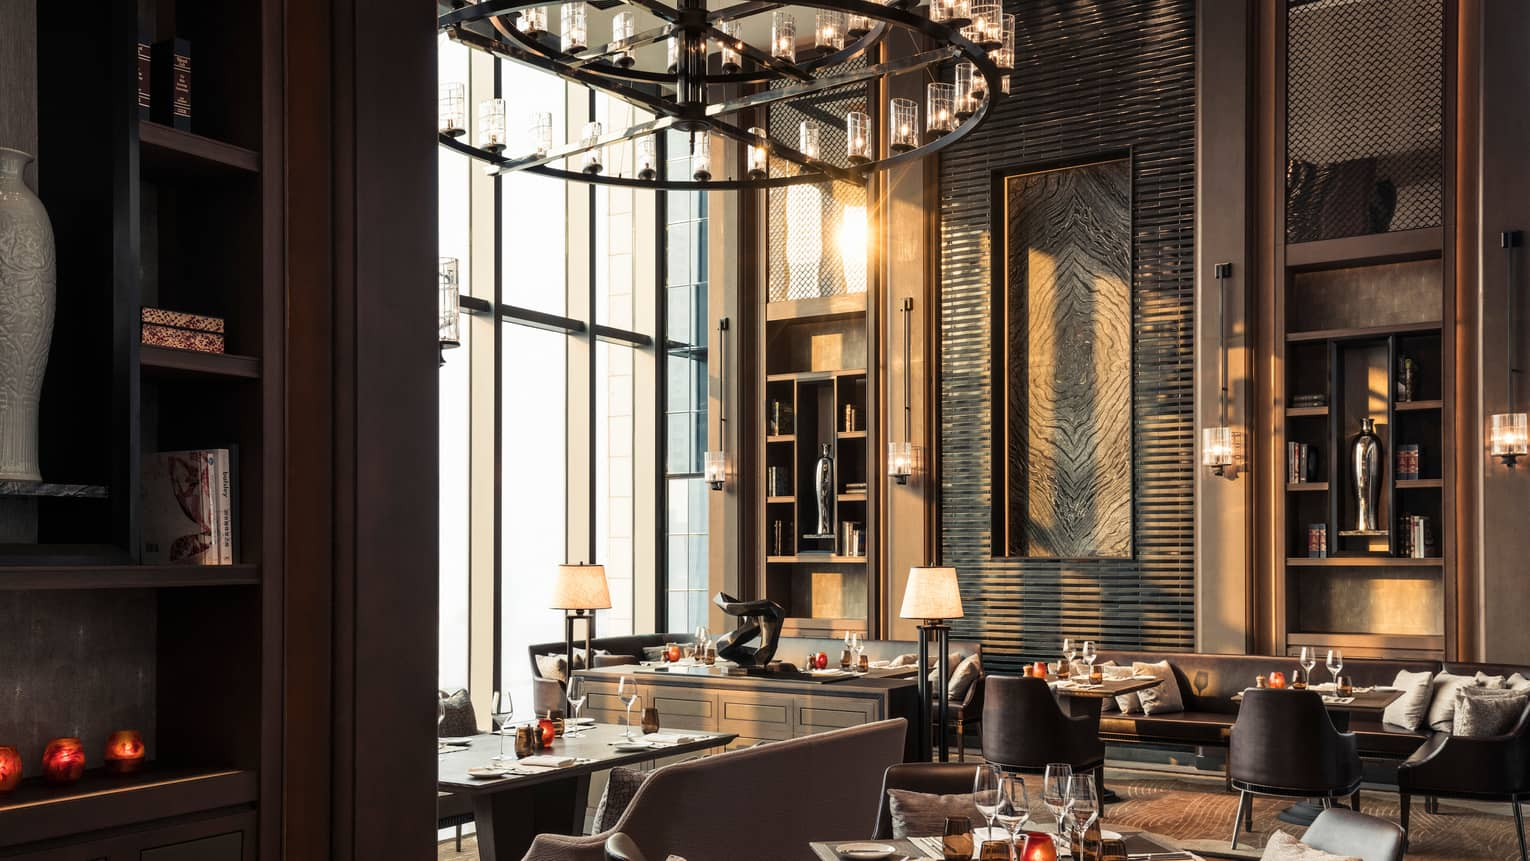 Cielo dining room, tables and chairs under sunny window, large round chandelier with candles